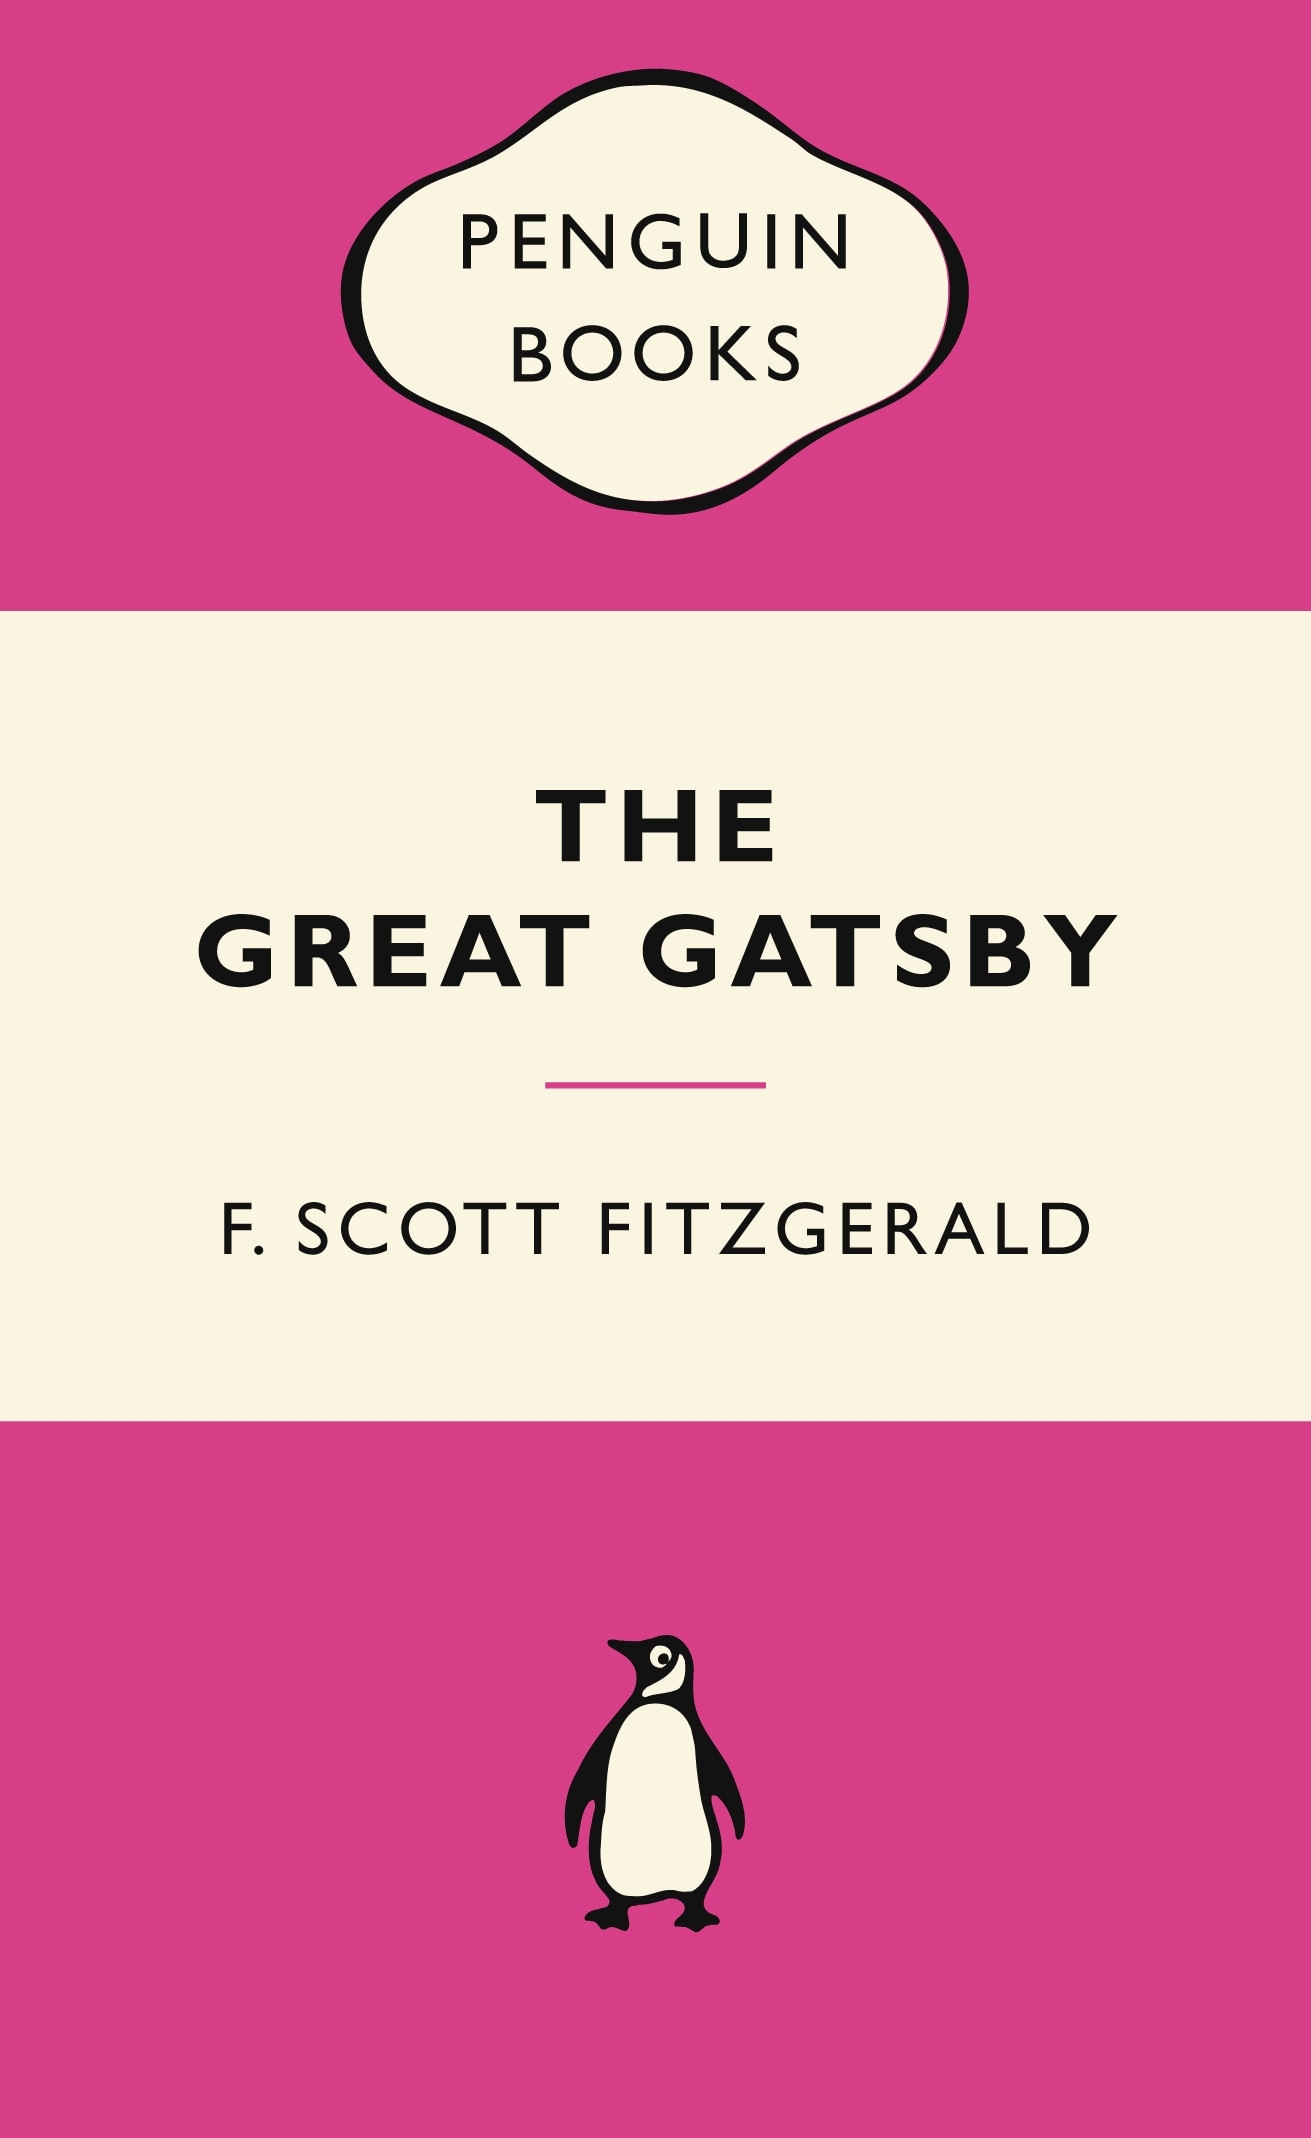 Classic Book Covers Penguin ~ The great gatsby pink popular penguins on hunt